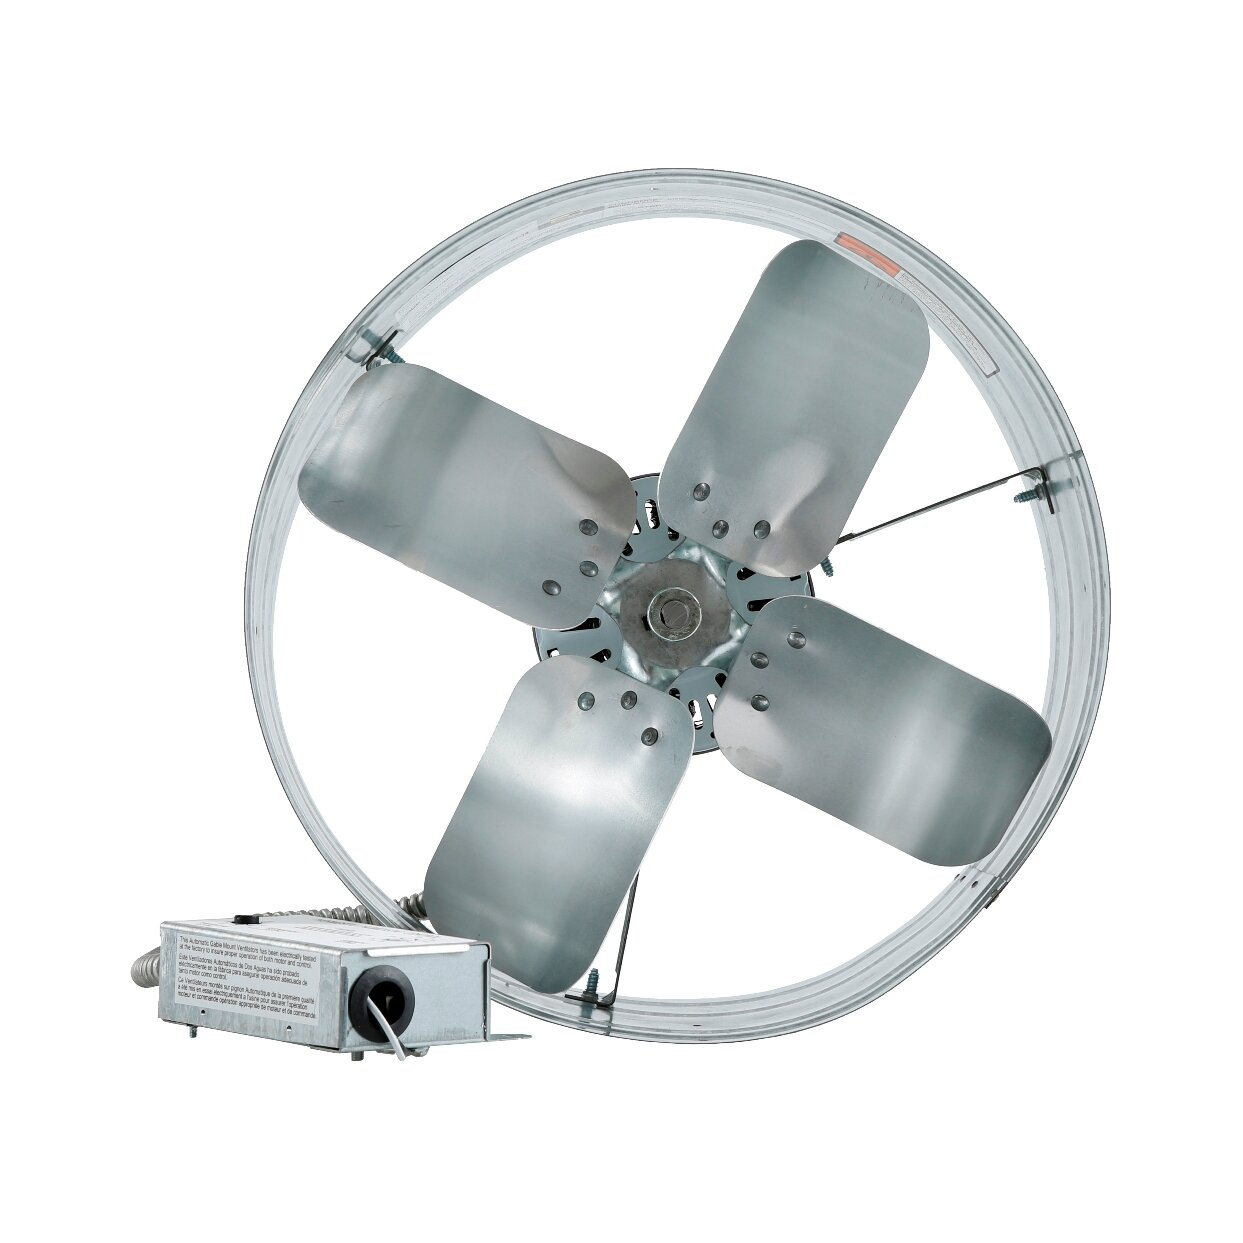 Iliving Gable Mount Attic Fan With Adjustable Thermostat